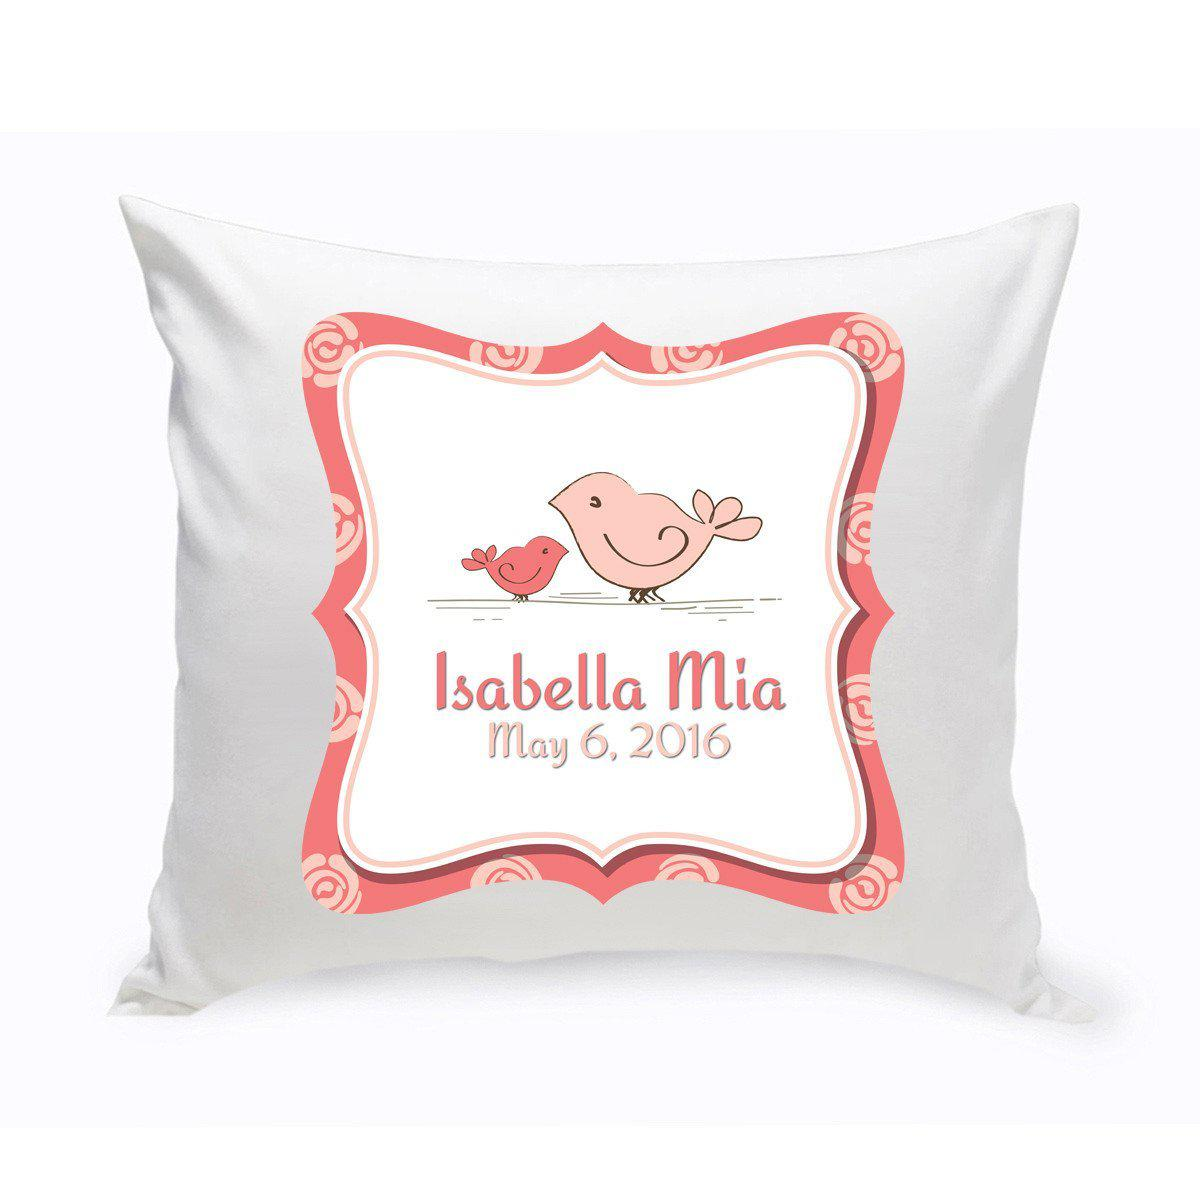 Throw Pillows Nairobi : Personalized Baby Nursery Throw Pillow - Birdies